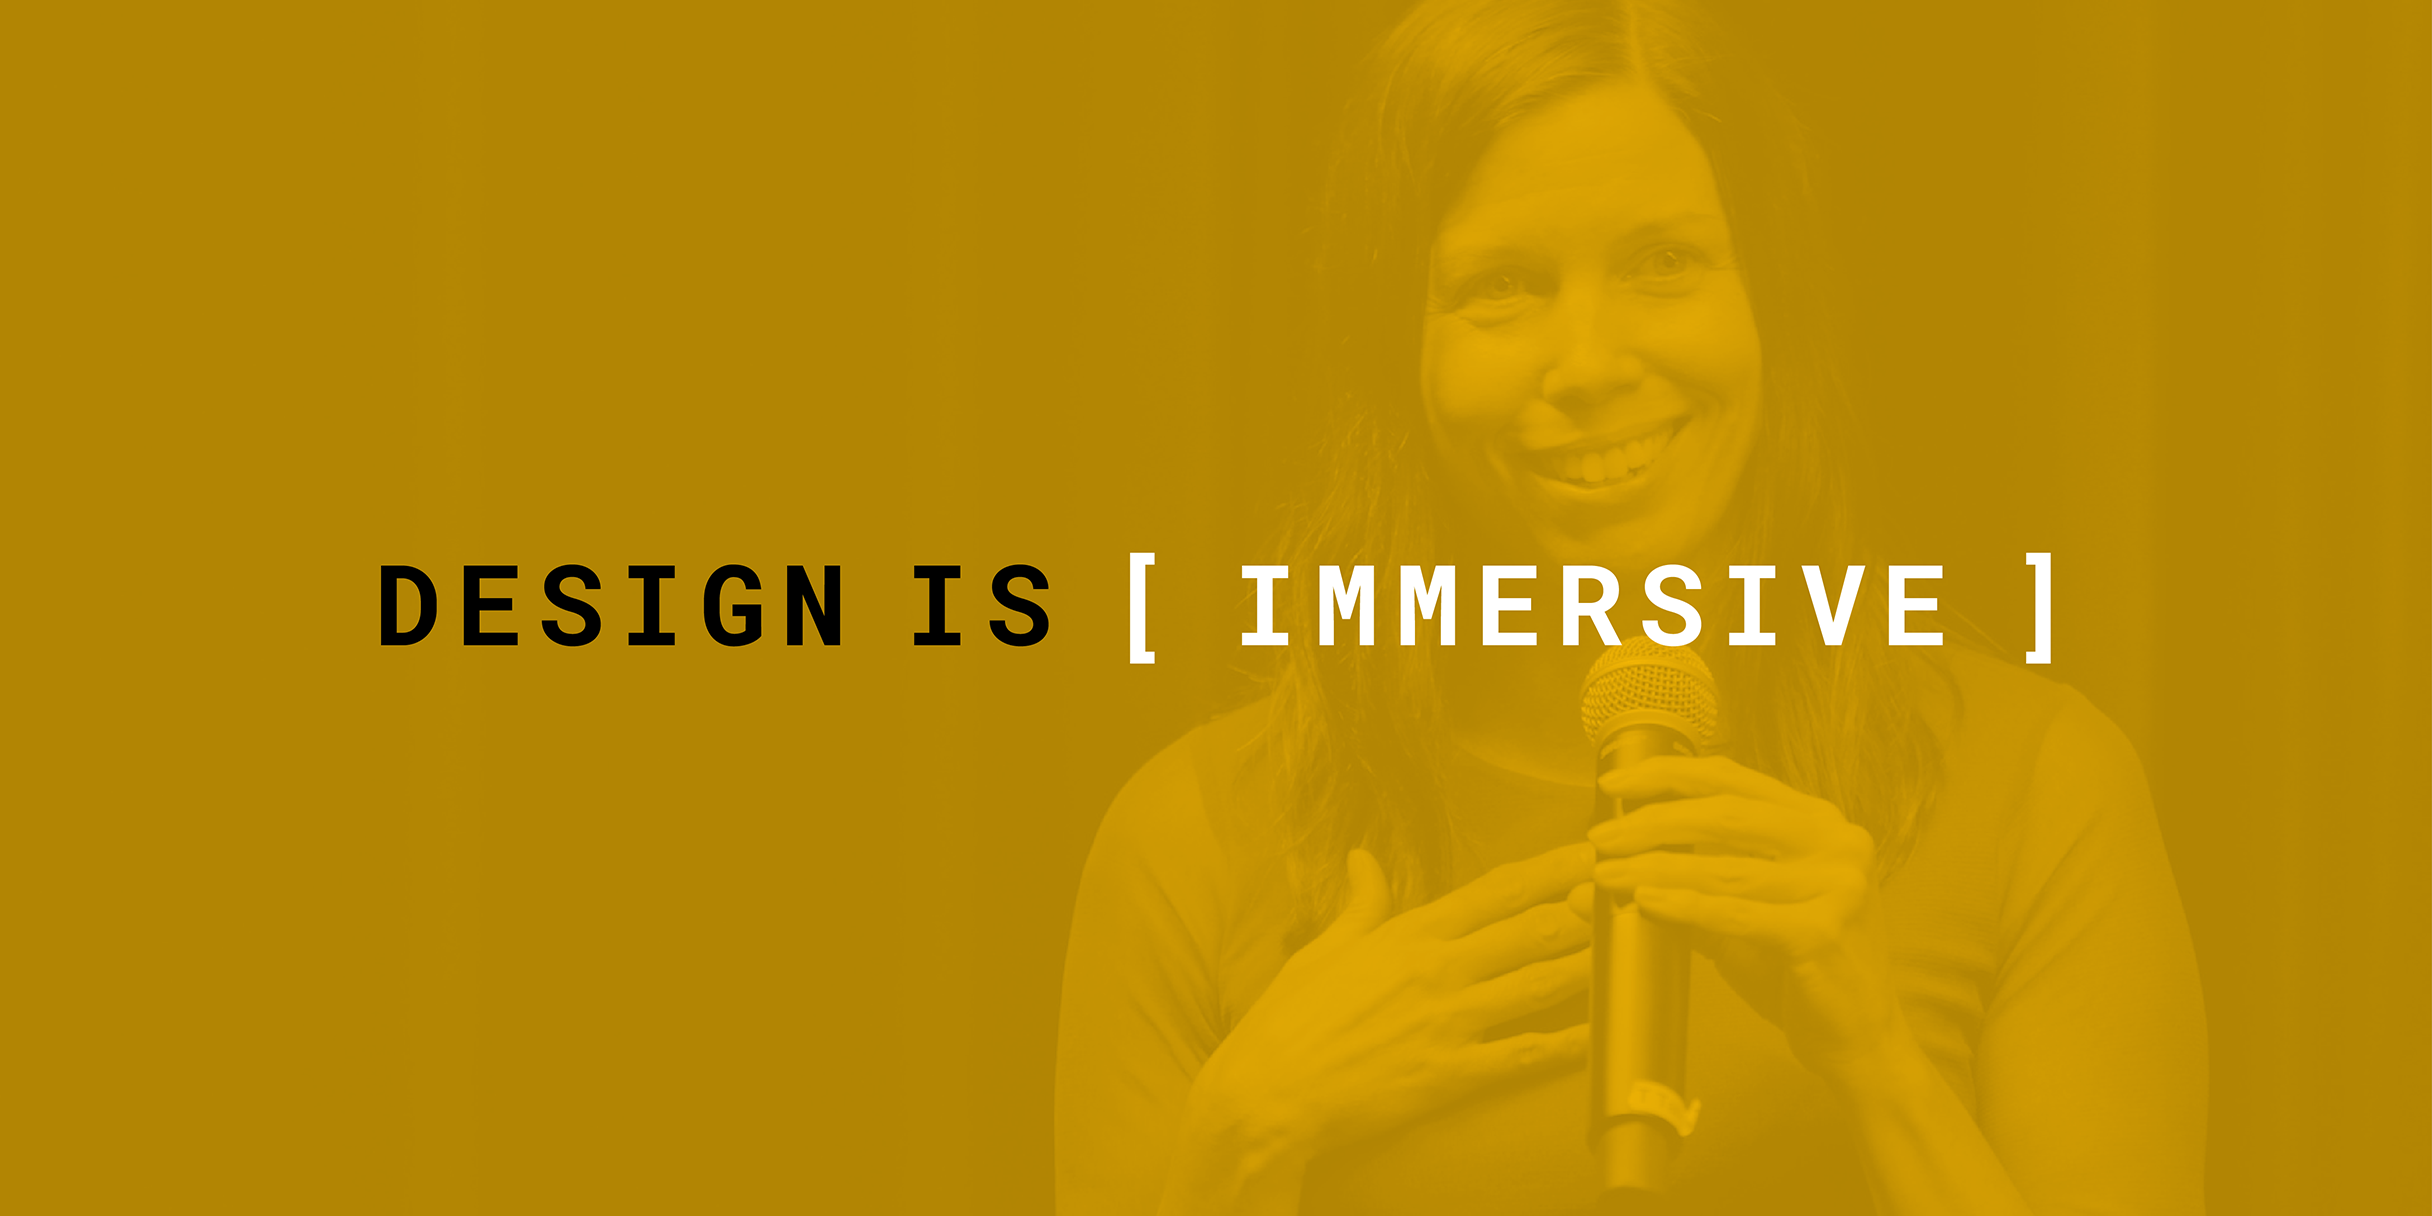 design_is_immersive_2x1.png